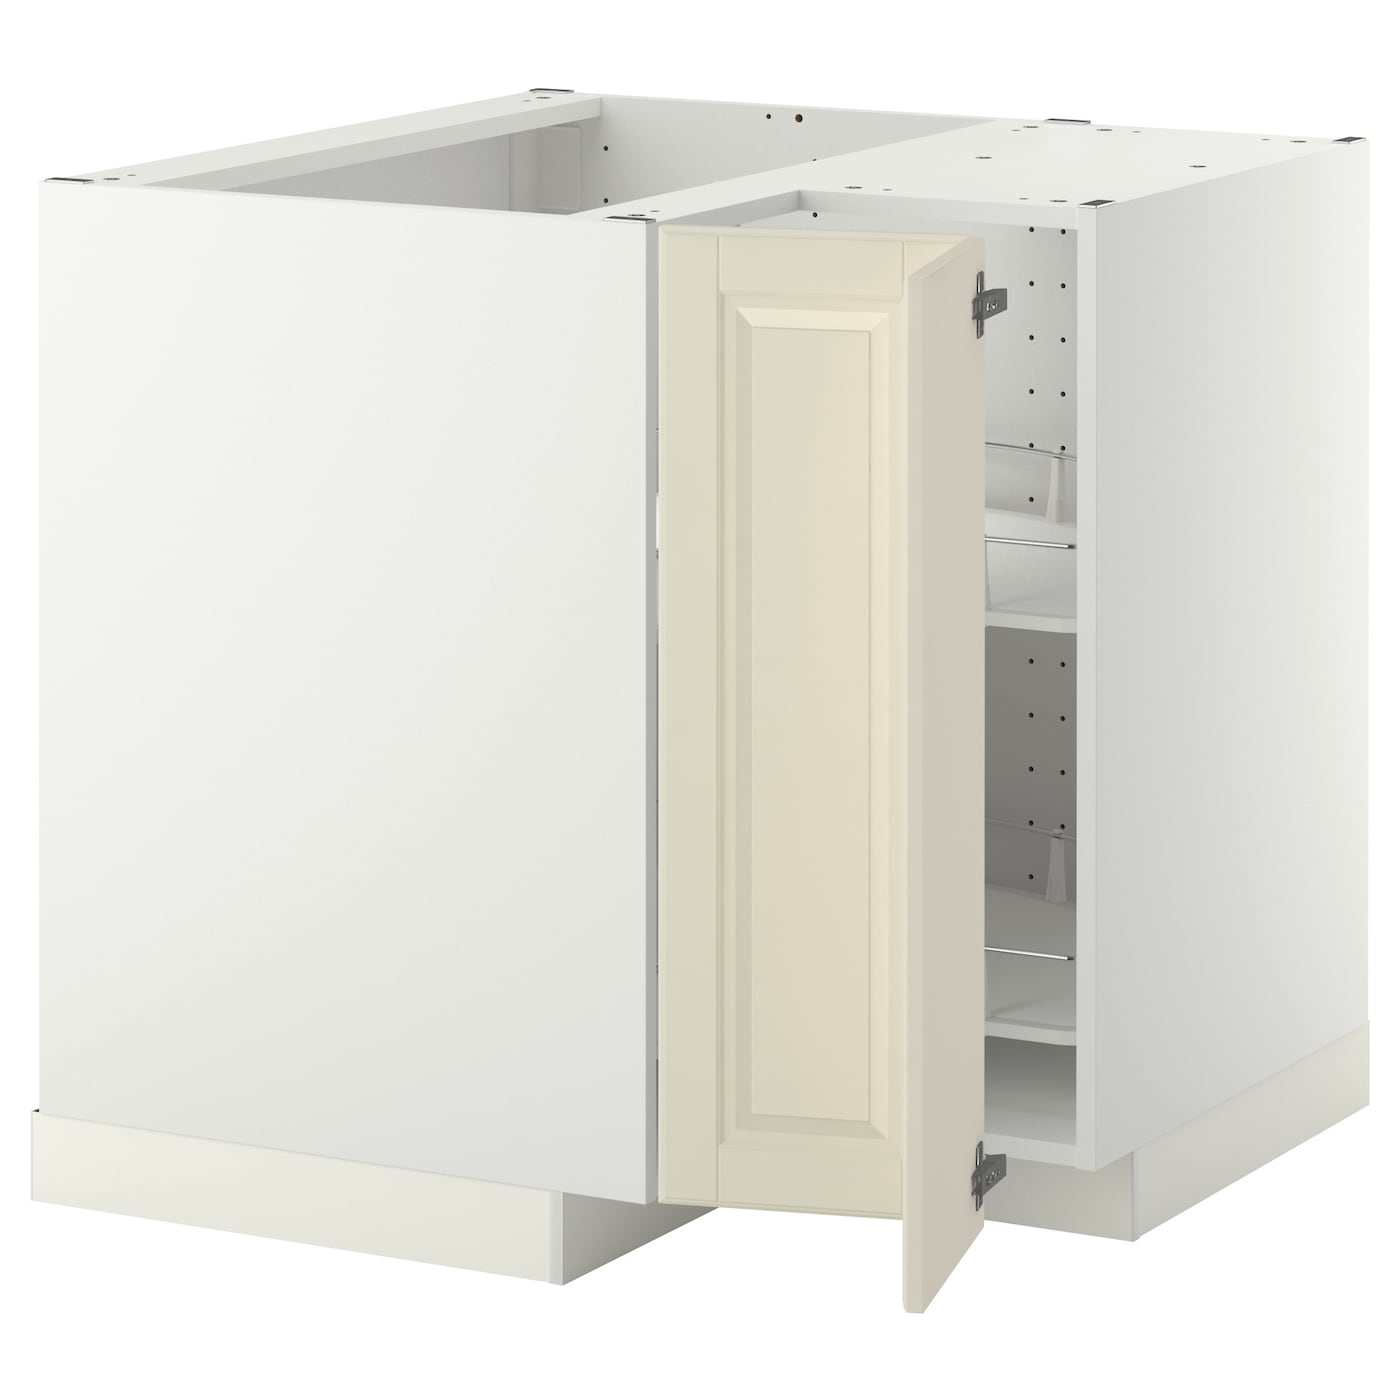 Haggeby Kitchen Metod Corner Base Cabinet With Carousel White Bodbyn Off